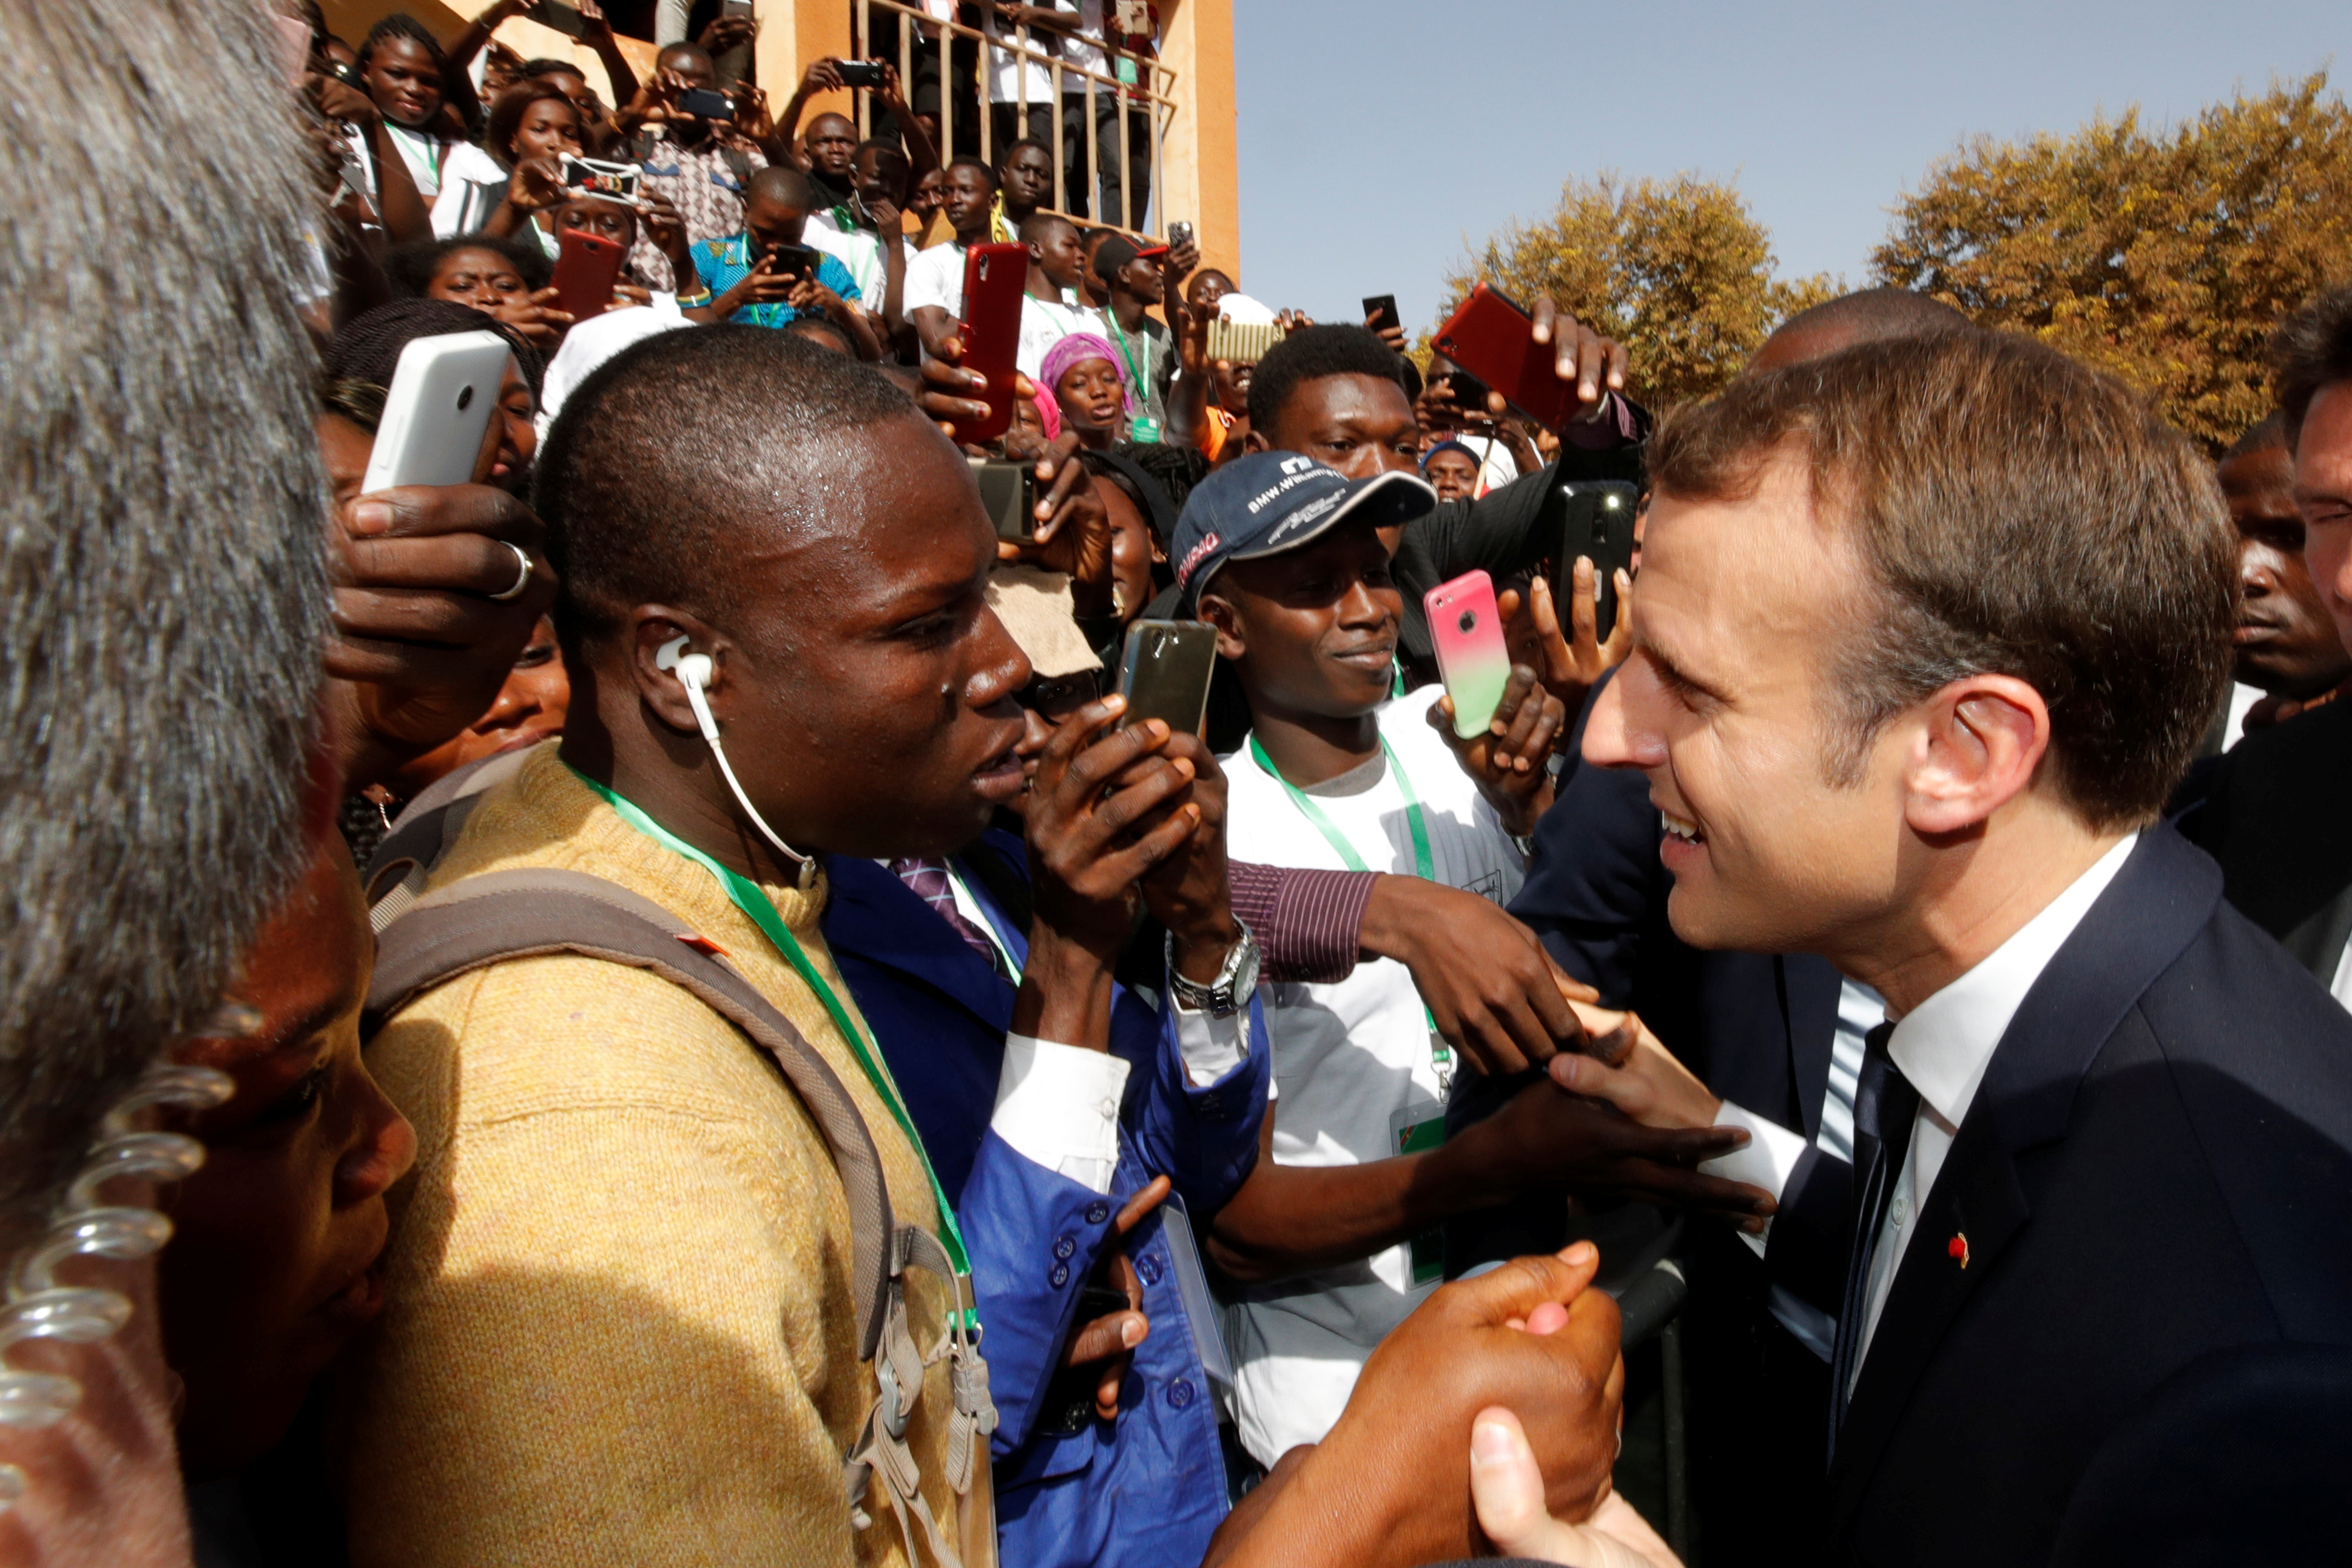 French President Emmanuel Macron shakes hands with people in the crowd as he leaves Ouagadougou University